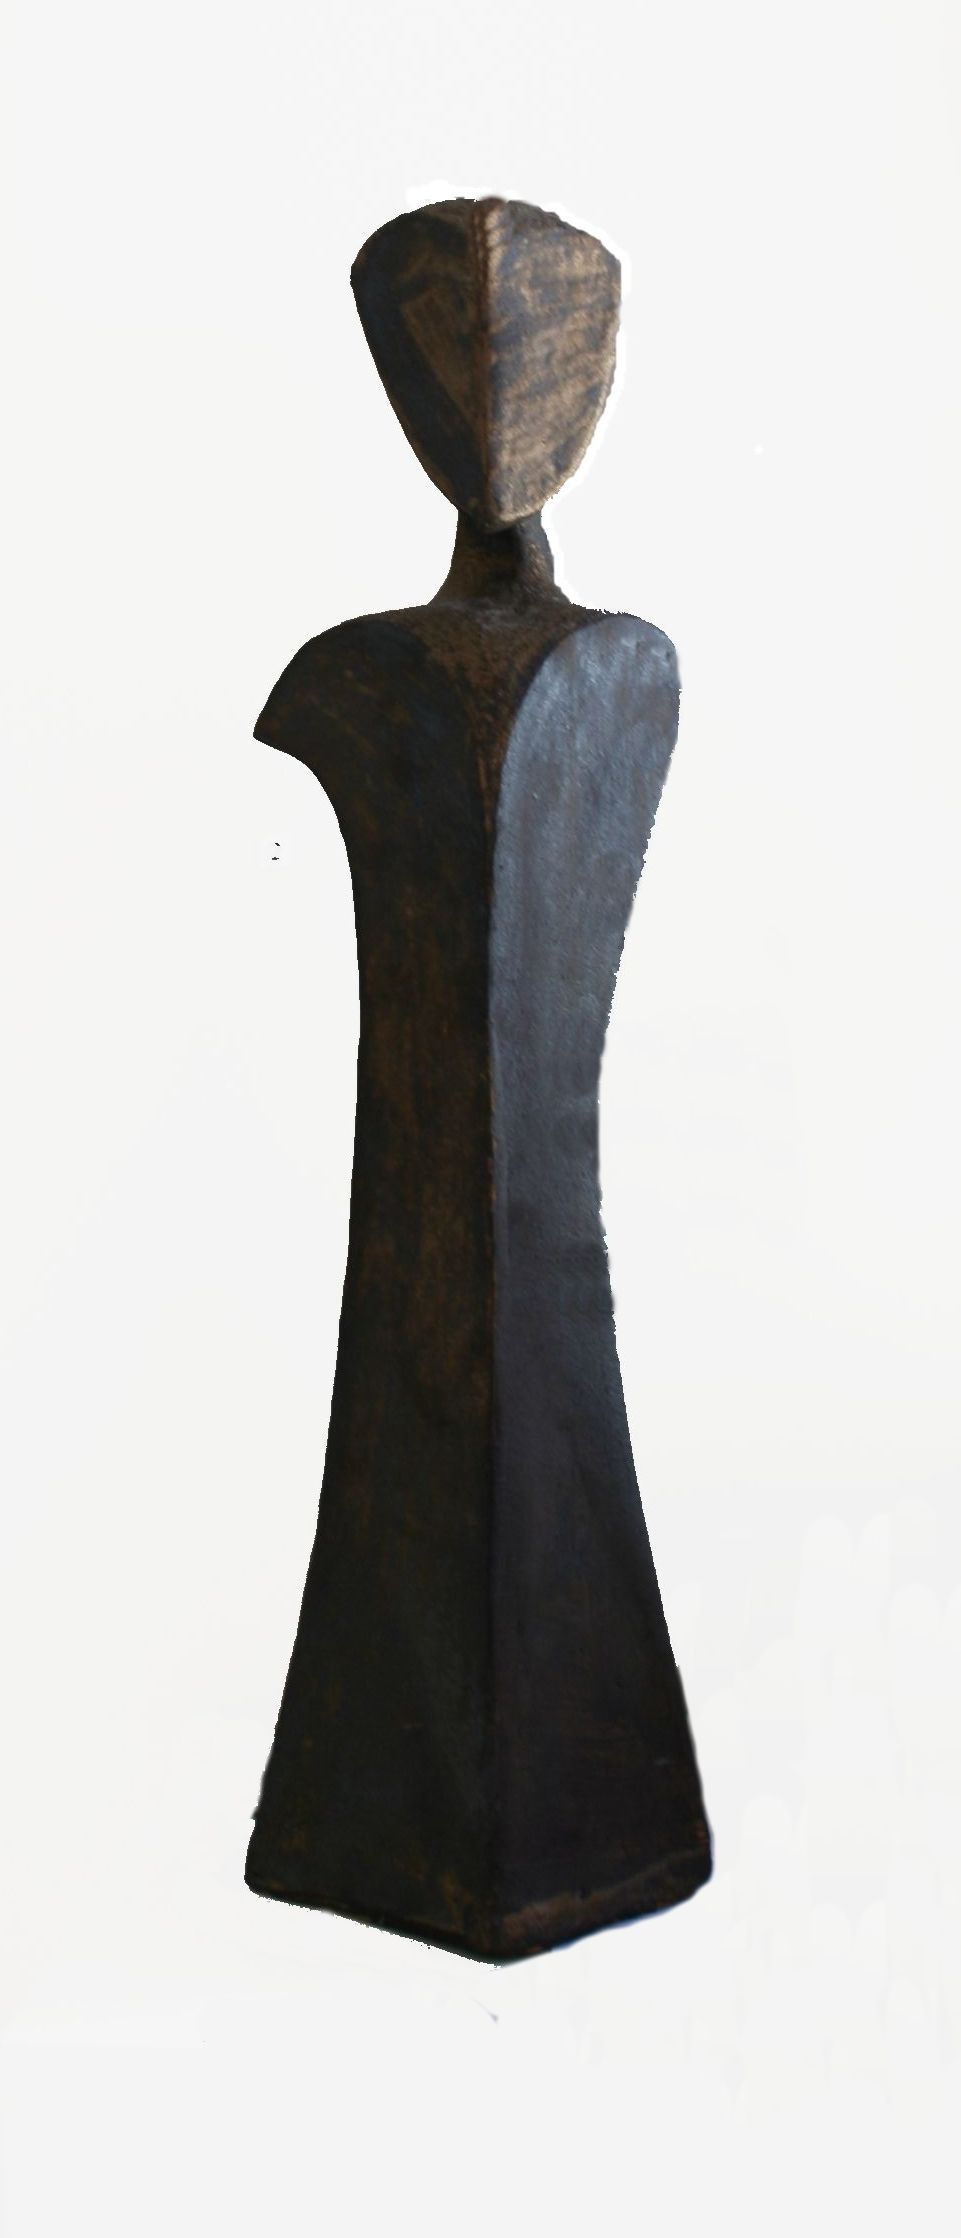 Baye Riddell                                                  The Spirit Mystic                                  Ceramic                                                        700 x 200 x 200 mm